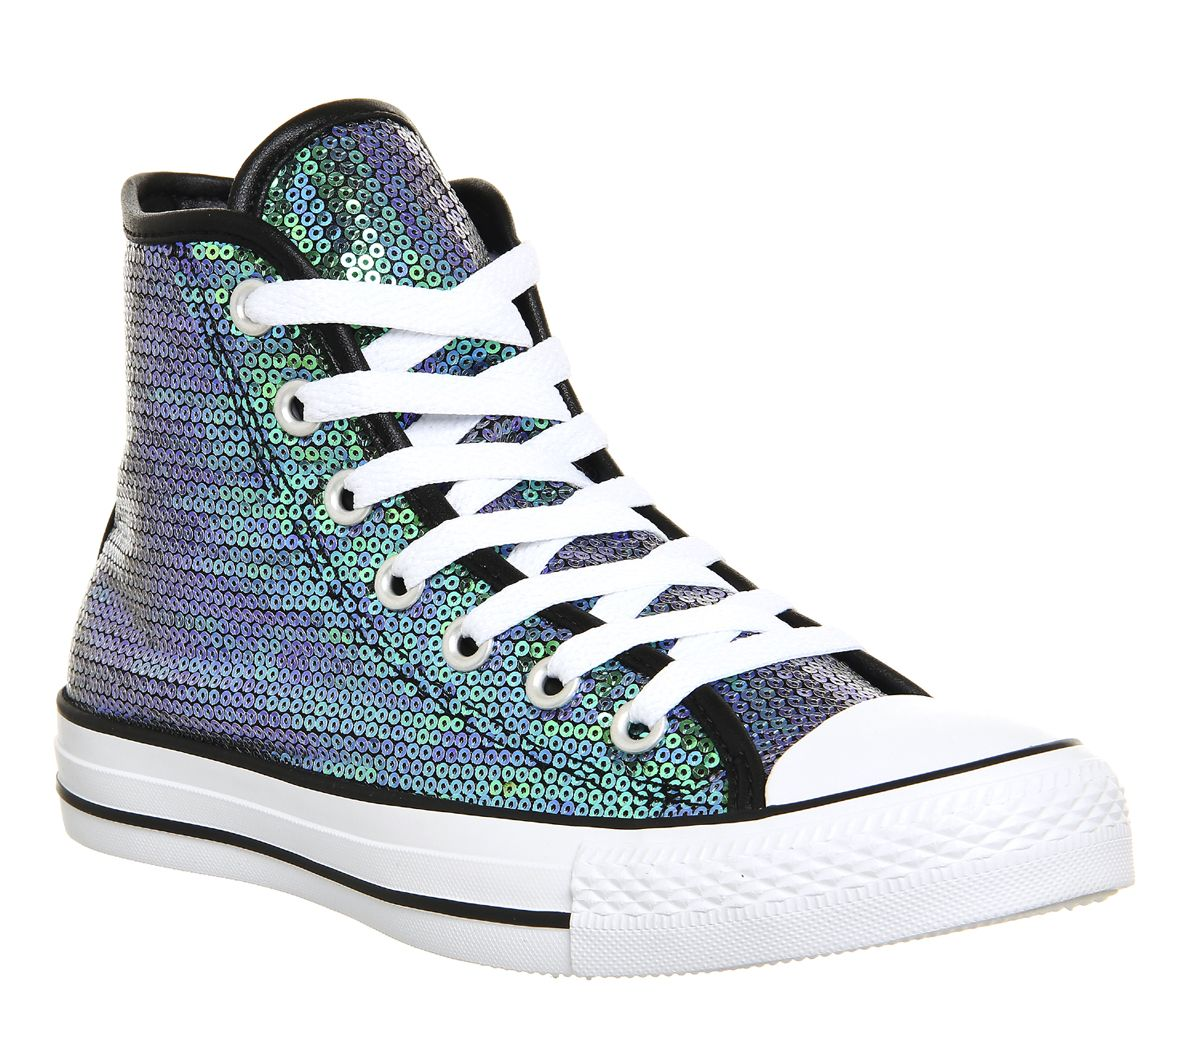 Converse Converse All Star Hi Gloom Green White Black Sequin - Unisex Sports